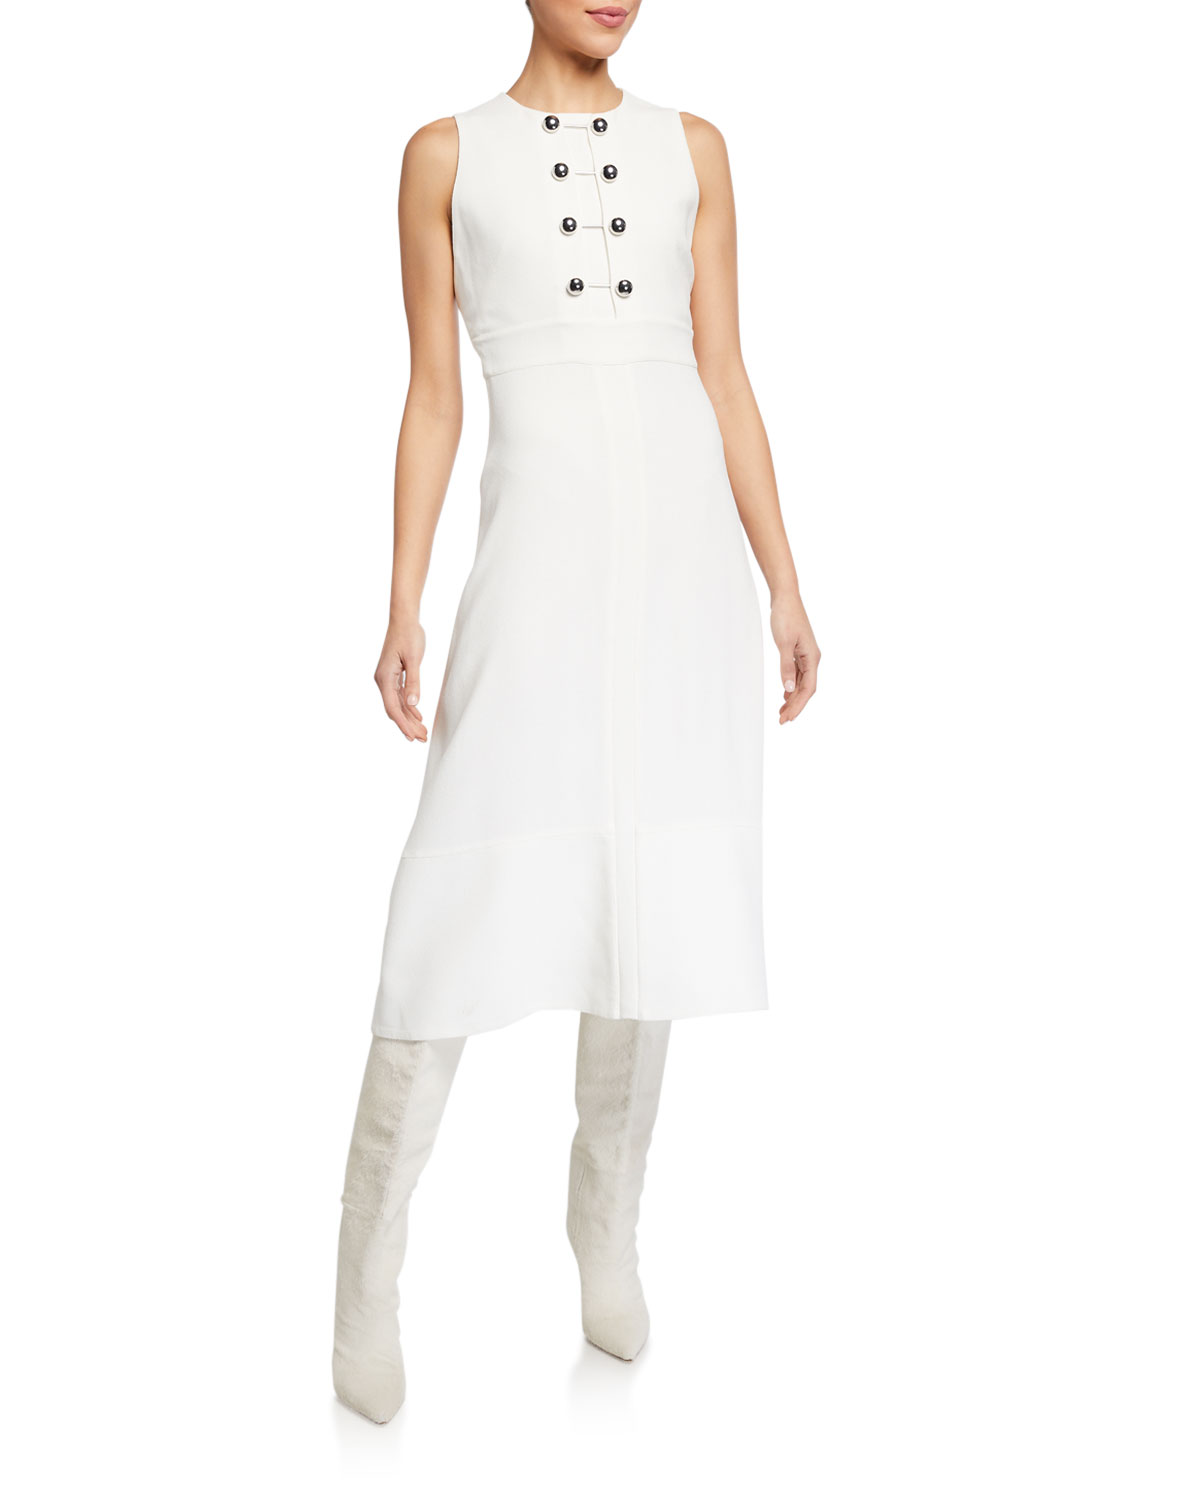 Proenza Schouler Sleeveless Barbell-Closure Dress